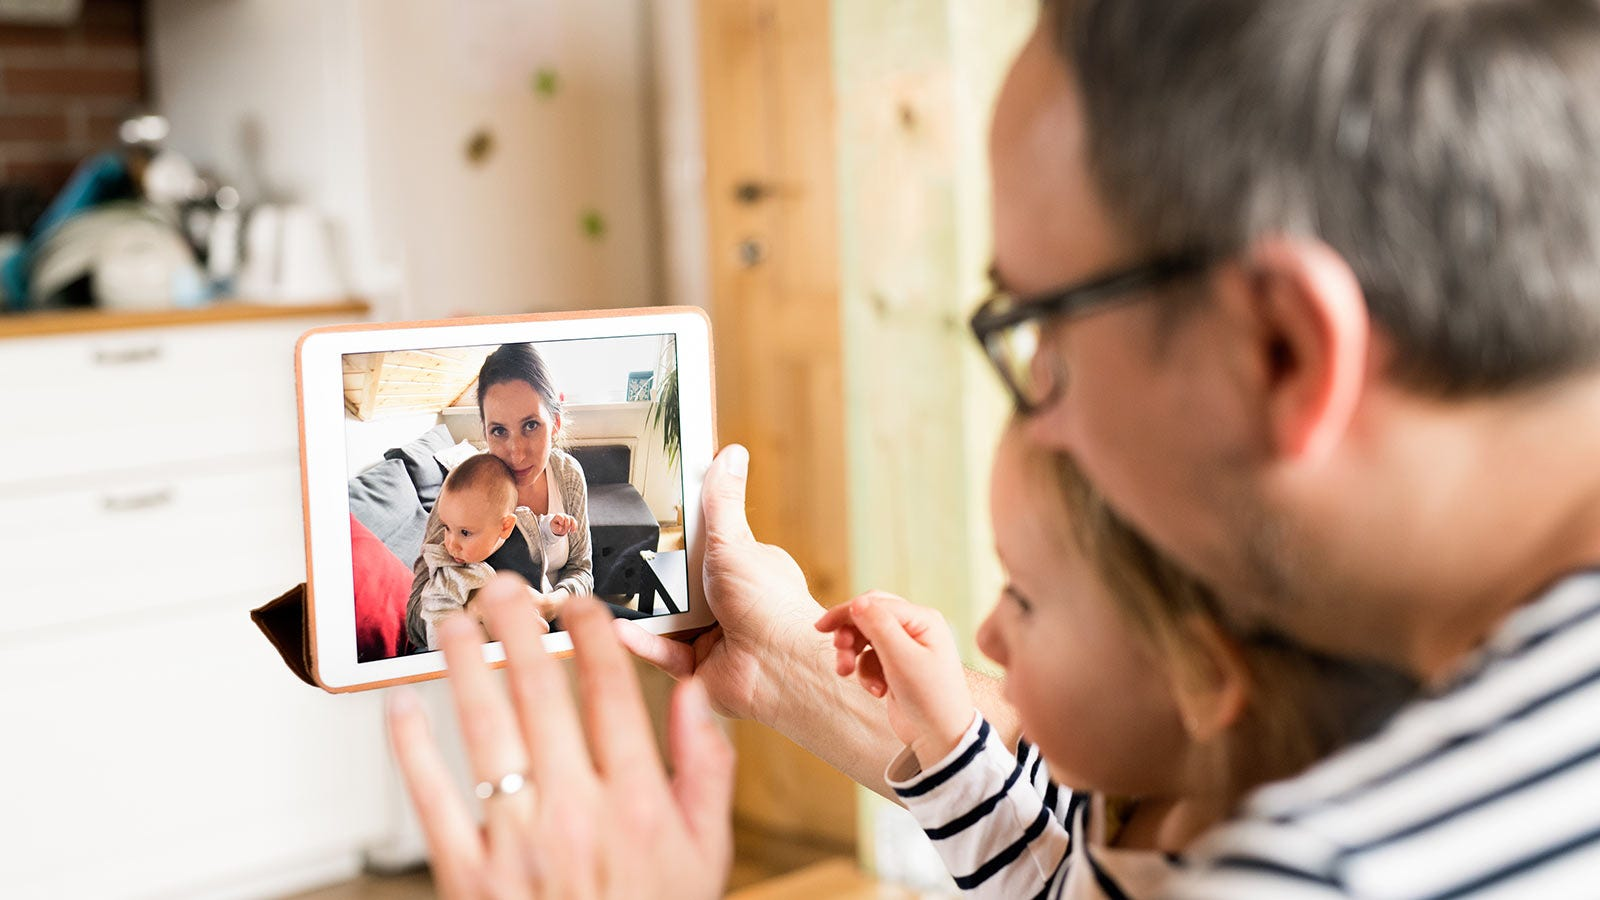 A man and little girl video chatting on a tablet with a woman holding a baby.